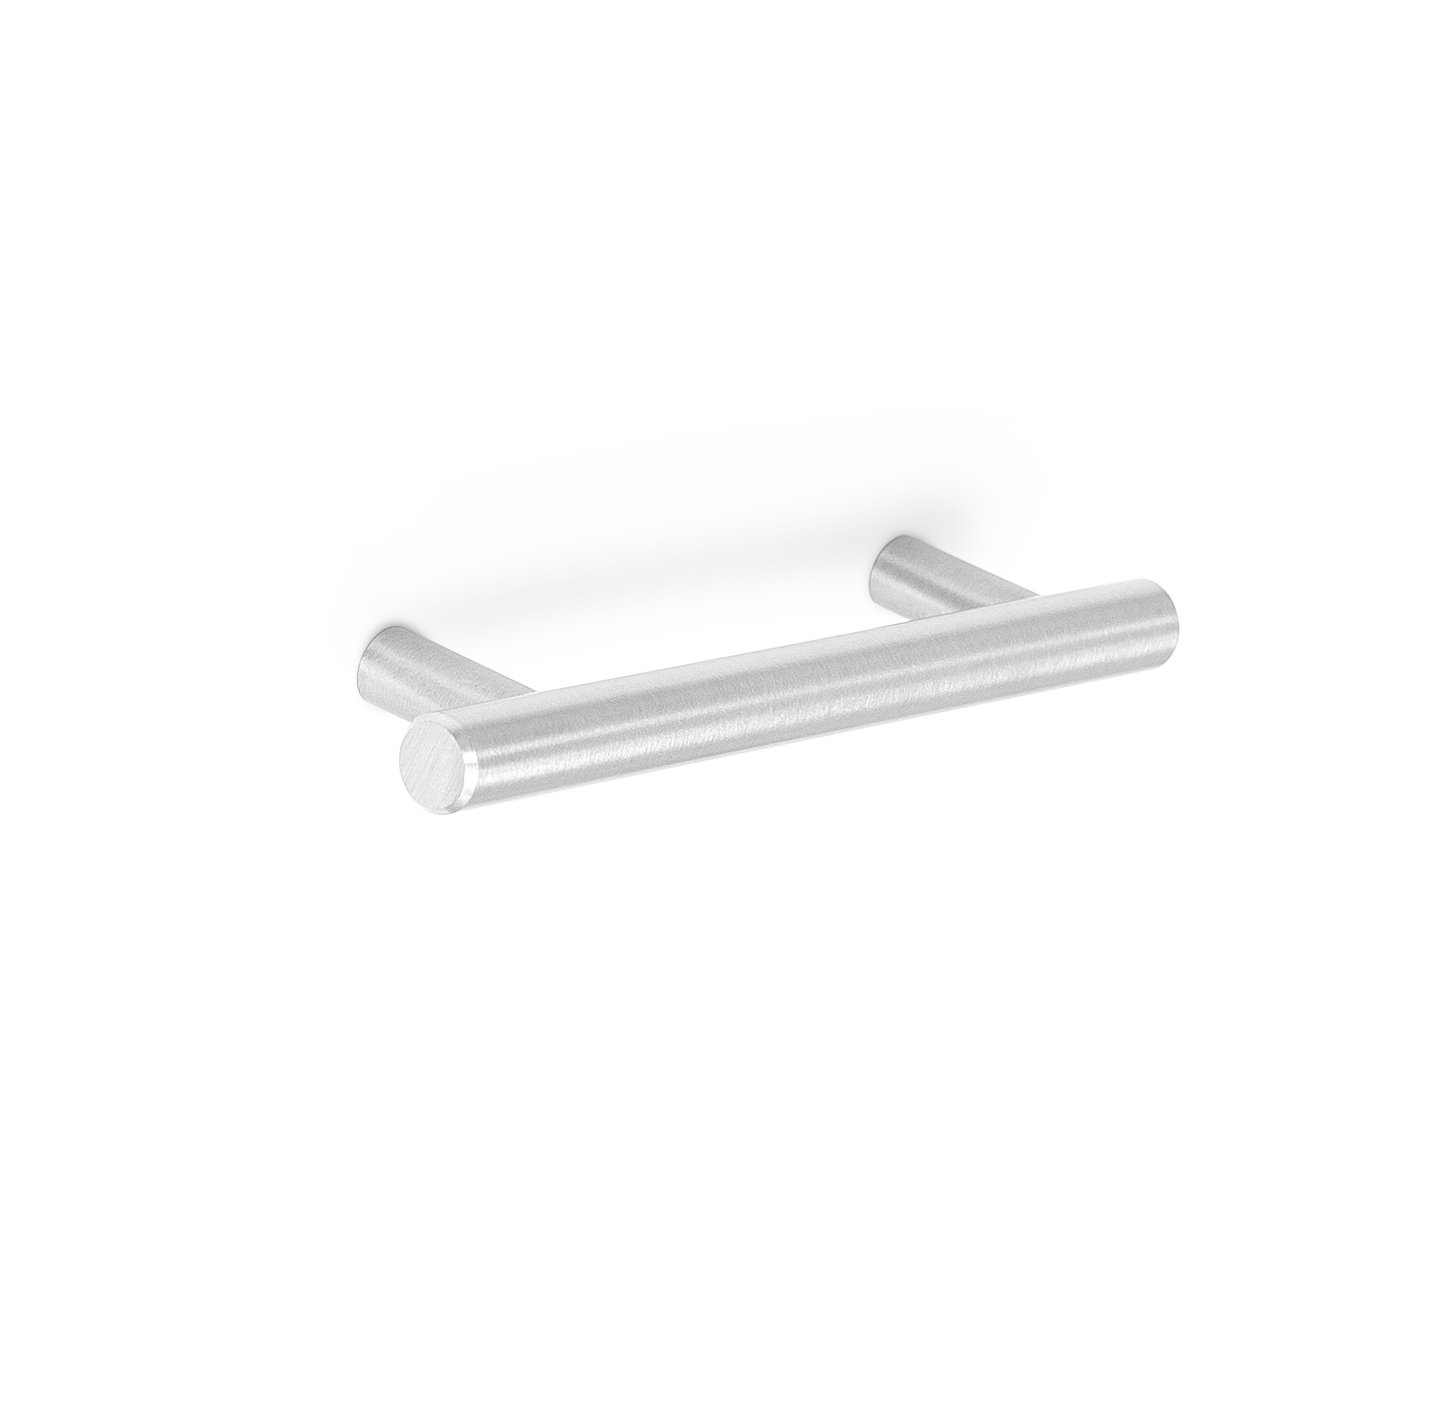 BirdRock Home Simple Modern Rounded T-Bar Handle | Brushed Nickel | 10 Pack | 3.75 Inch Kitchen Cupboard Furniture Cabinet Hardware Drawer Pull Trad